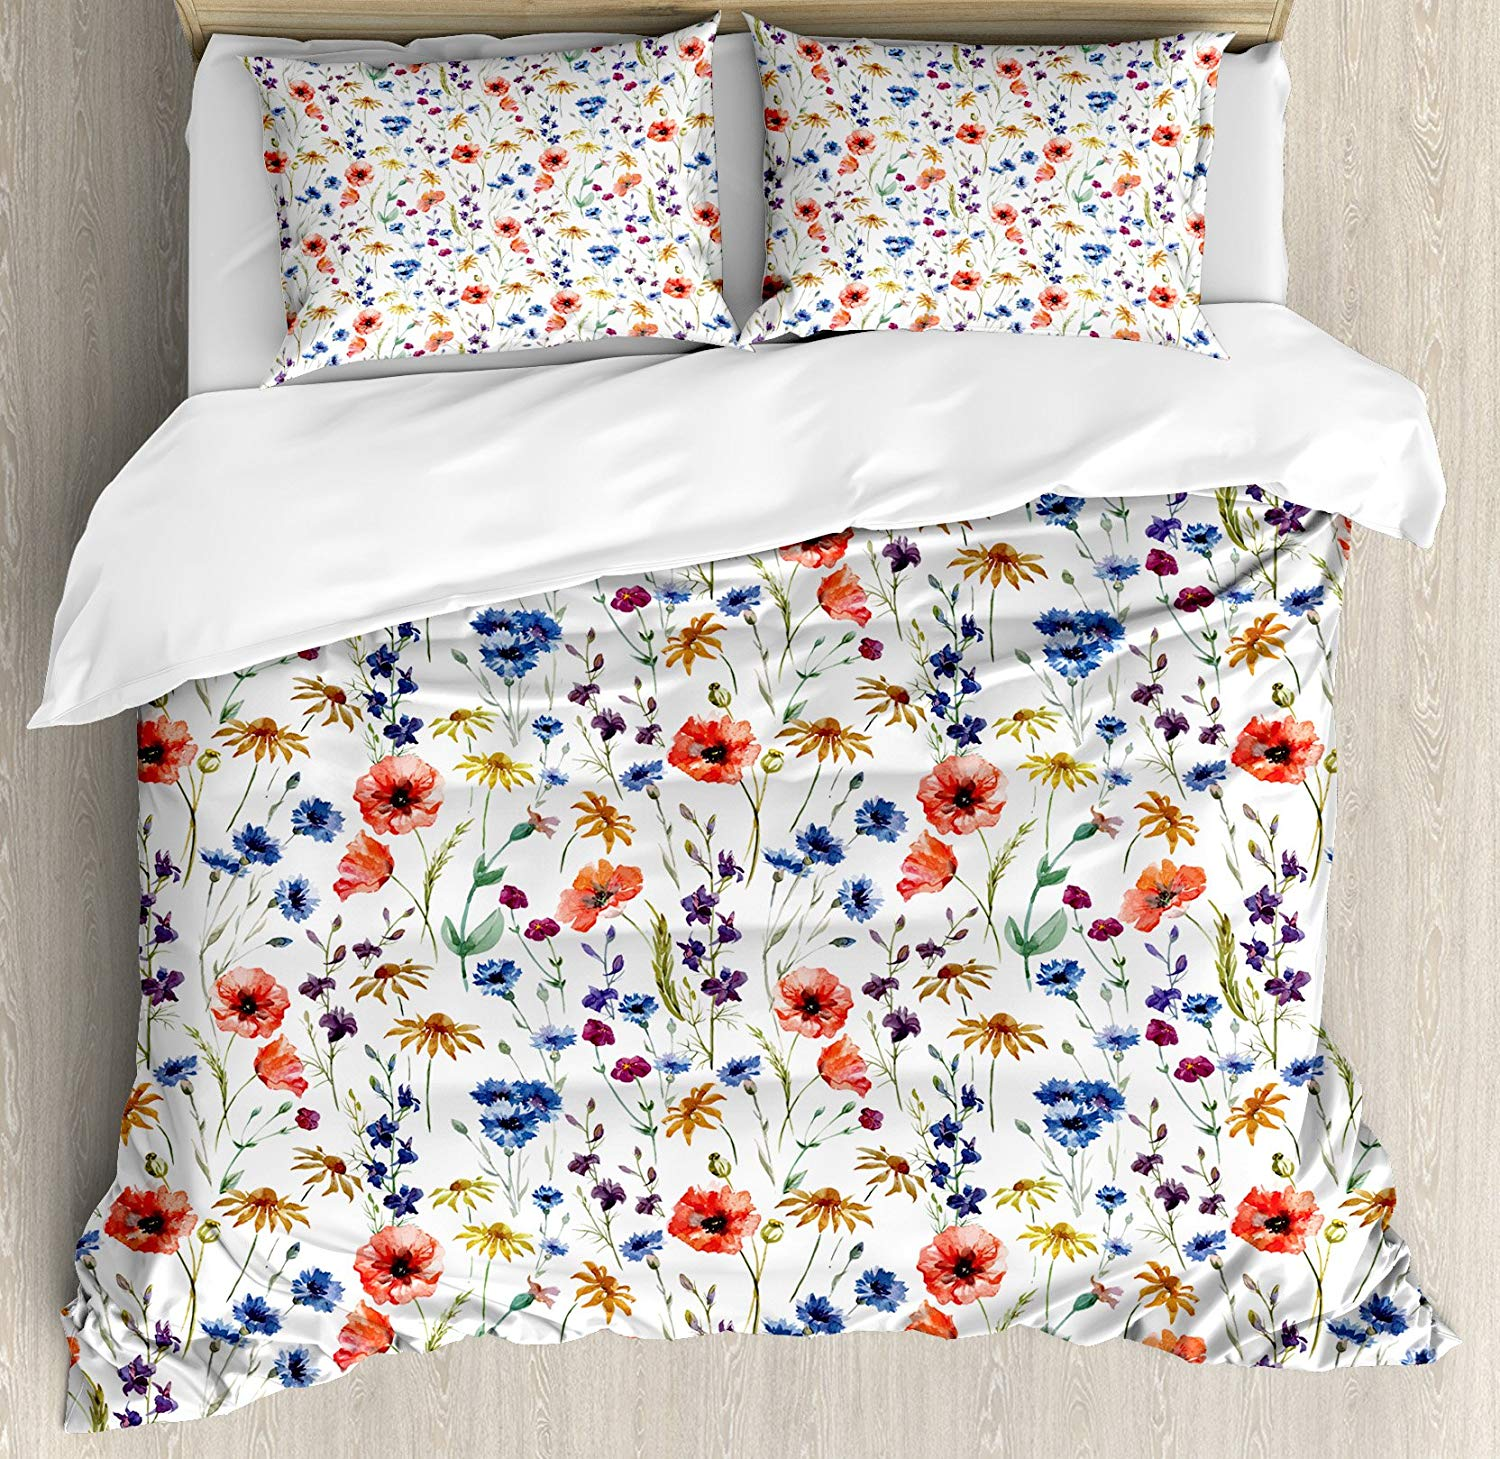 House Decor Duvet Cover Set Queen Size Wildflowers Poppy Chamomile Cornflowers Daisies Countryside Fun Bedding Set